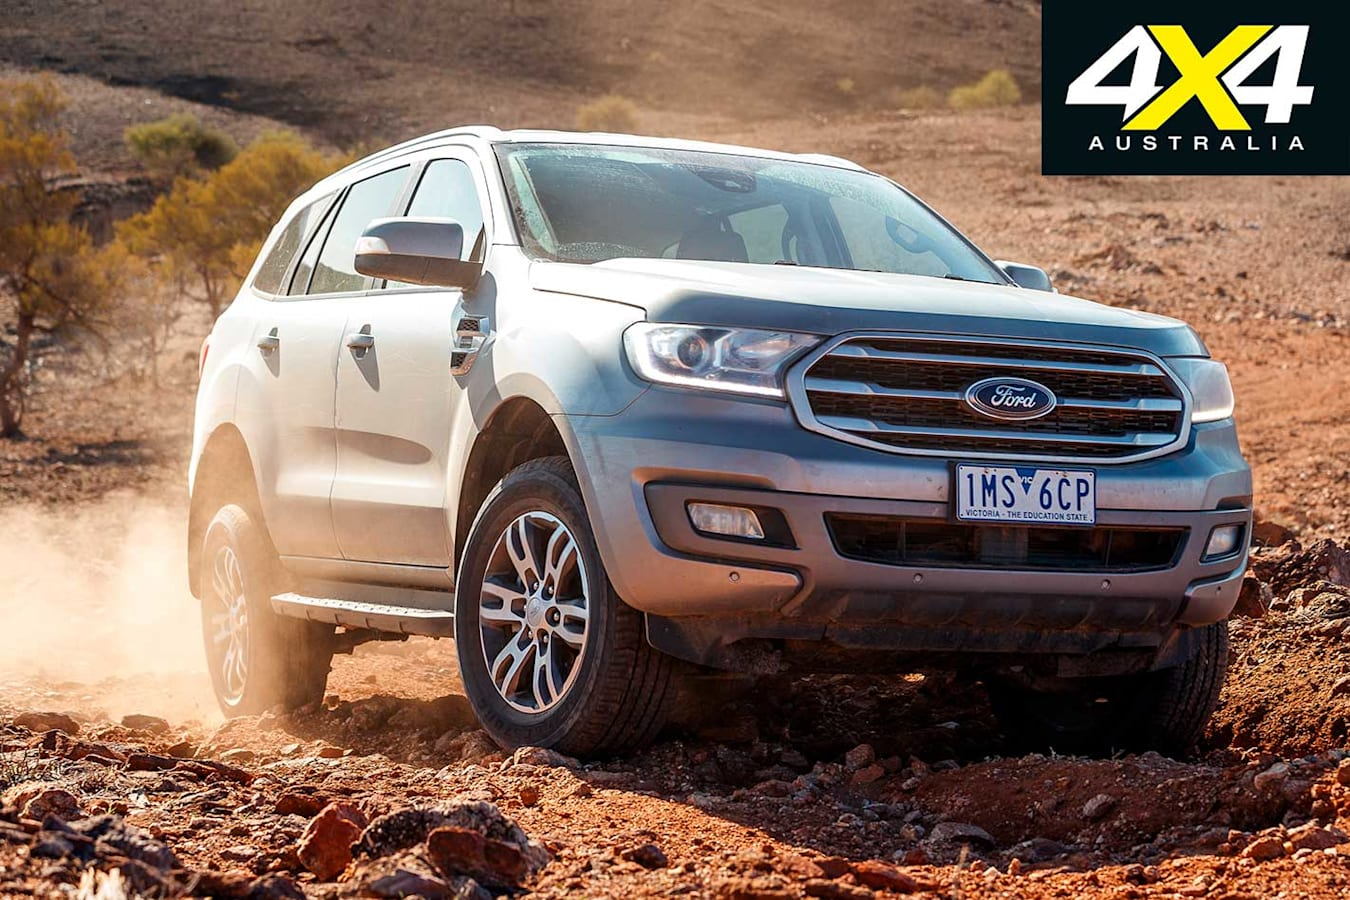 2019 4 X 4 Of The Year Ford Everest Trend Trail Driving Jpg